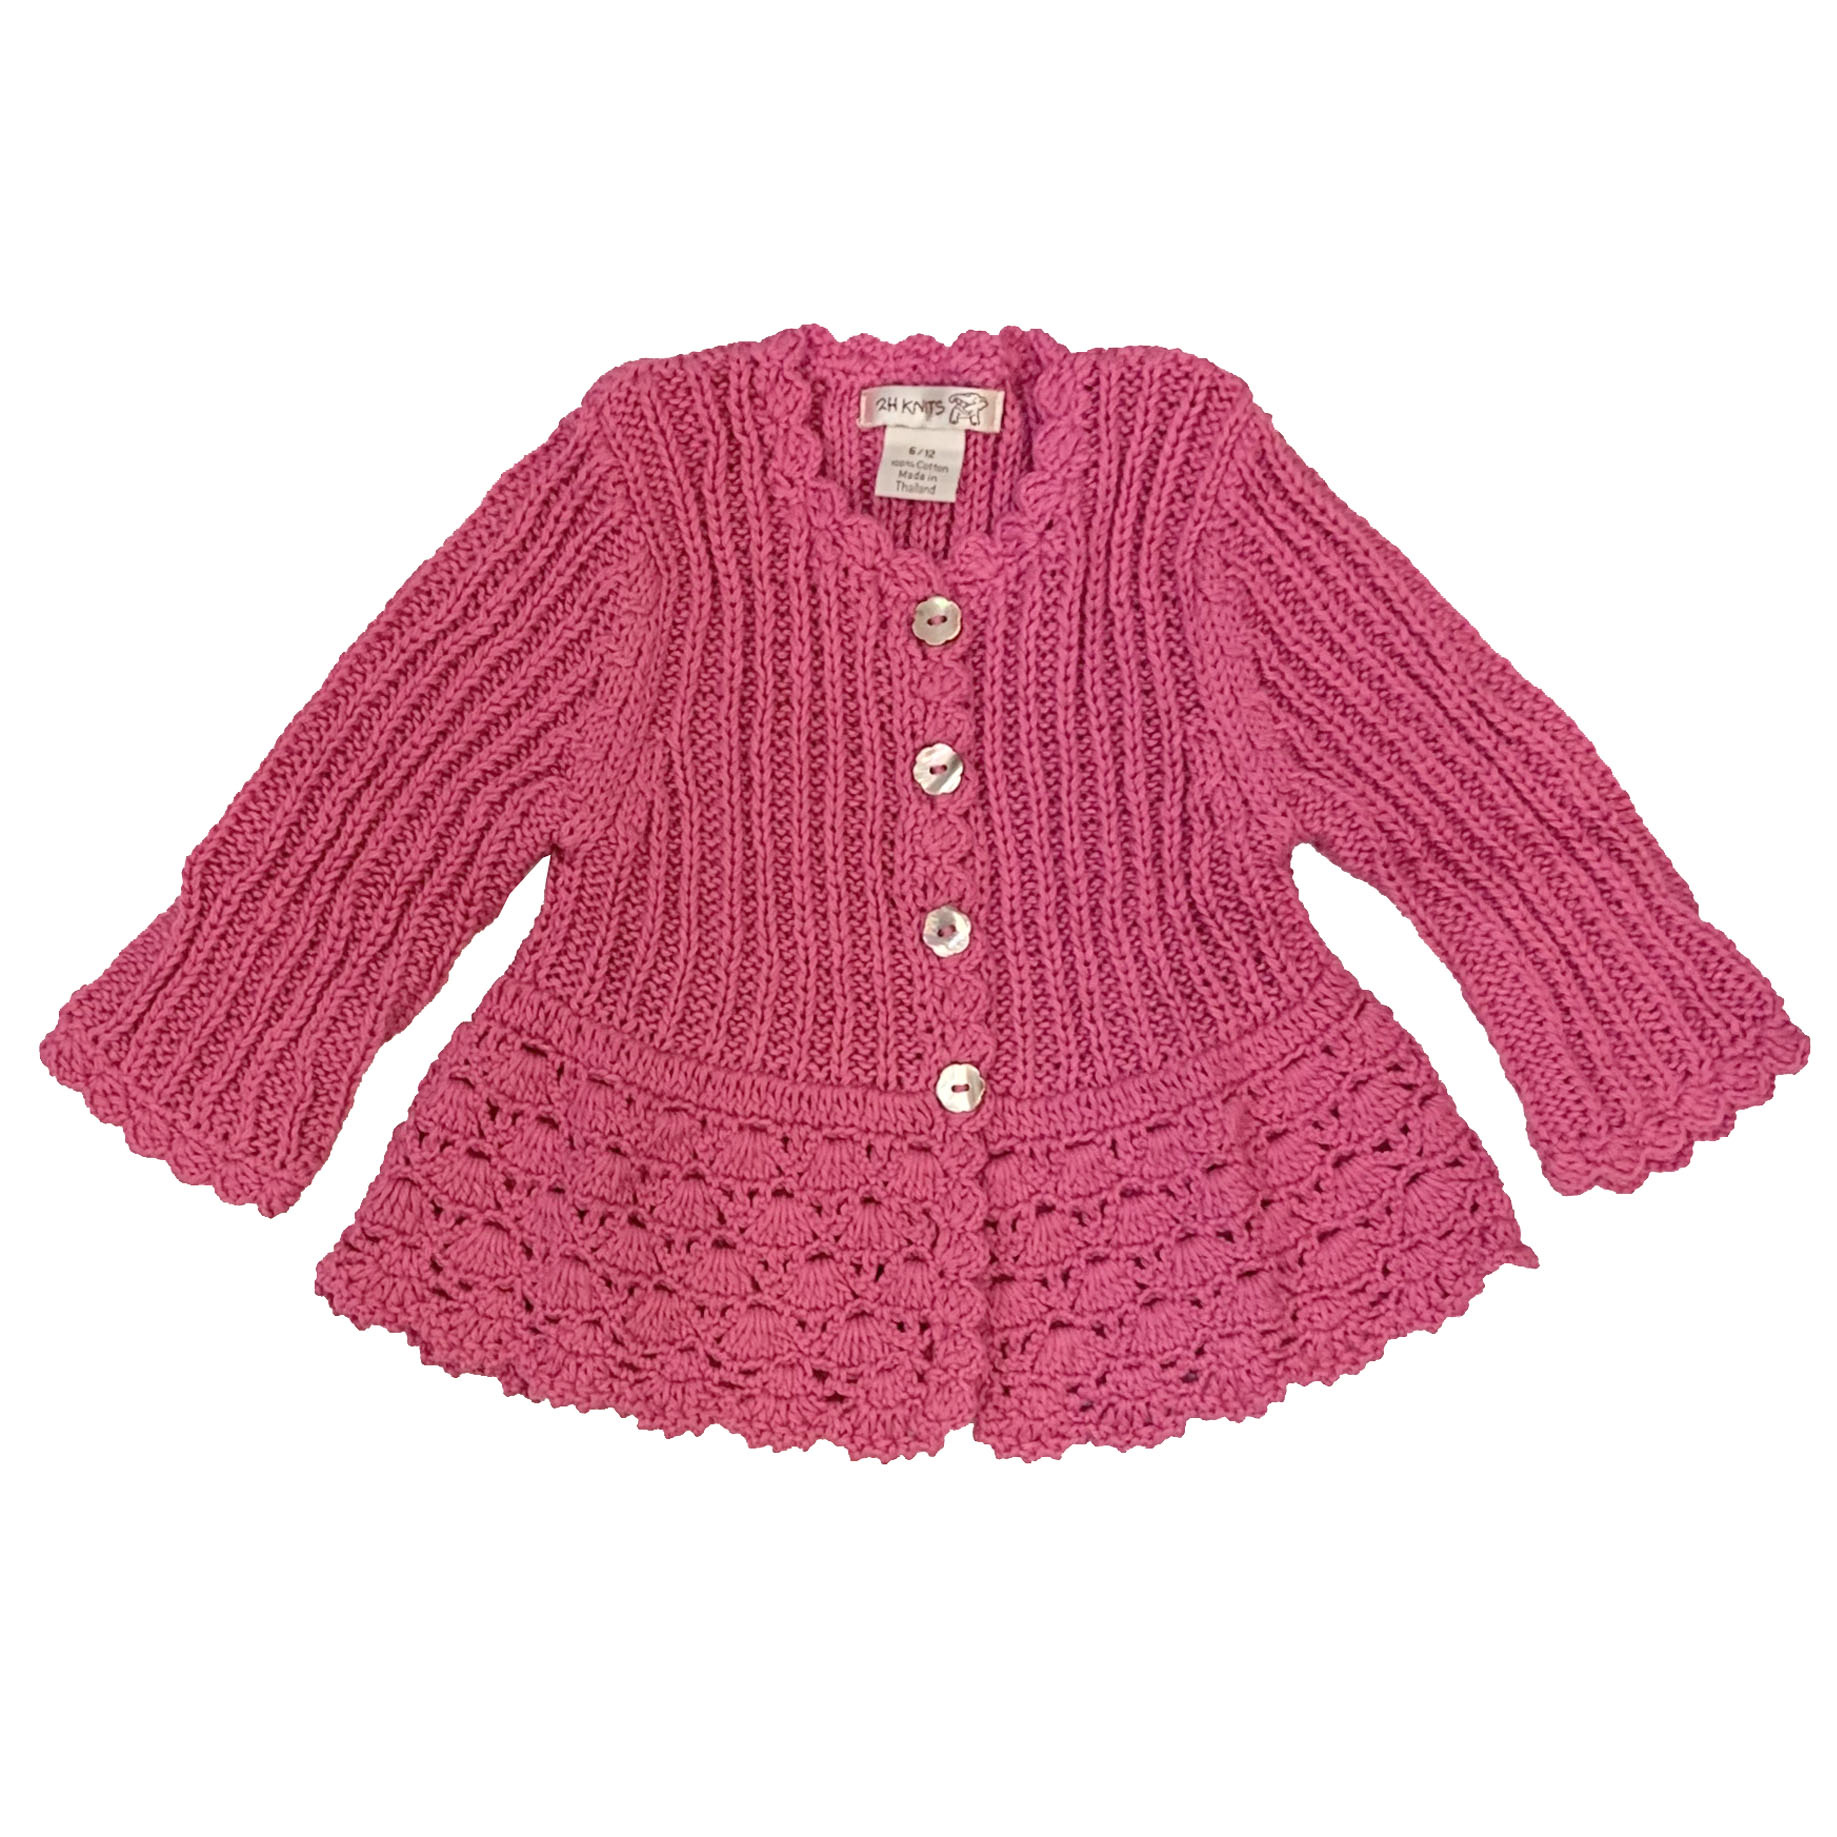 2 H Knits Hot Pink Peplum Sweater